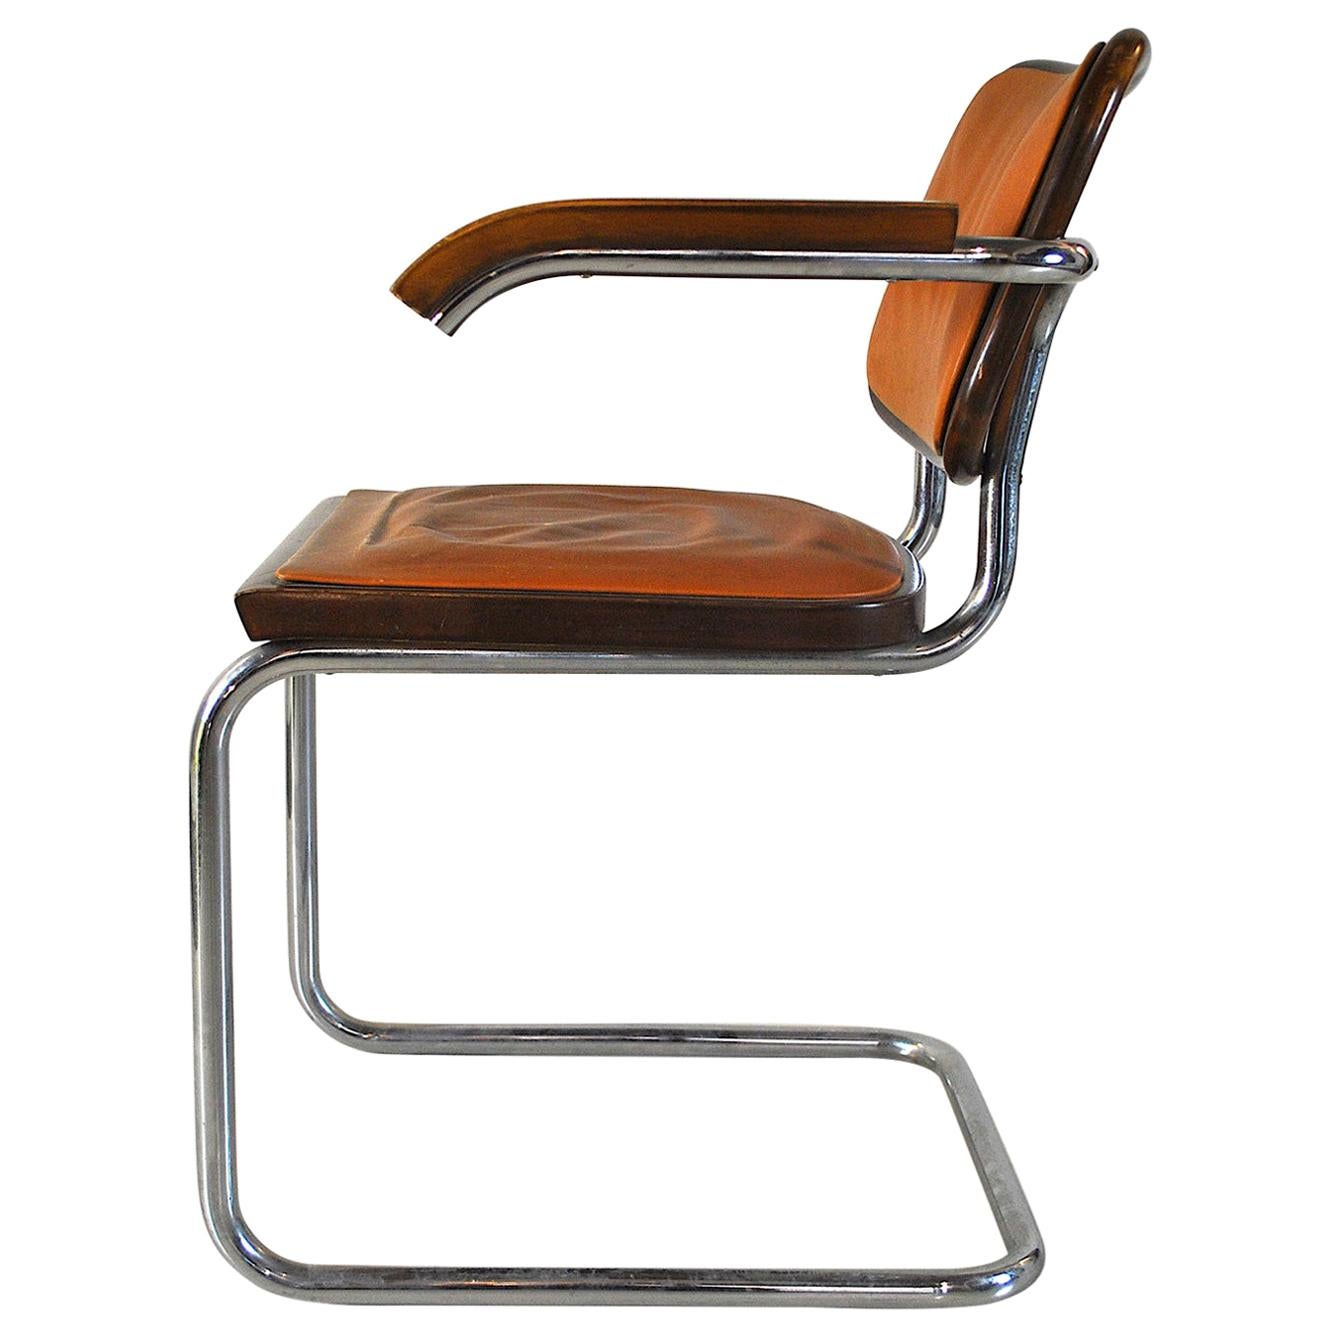 In a Style Marcel Breuer Chair Model Cesca